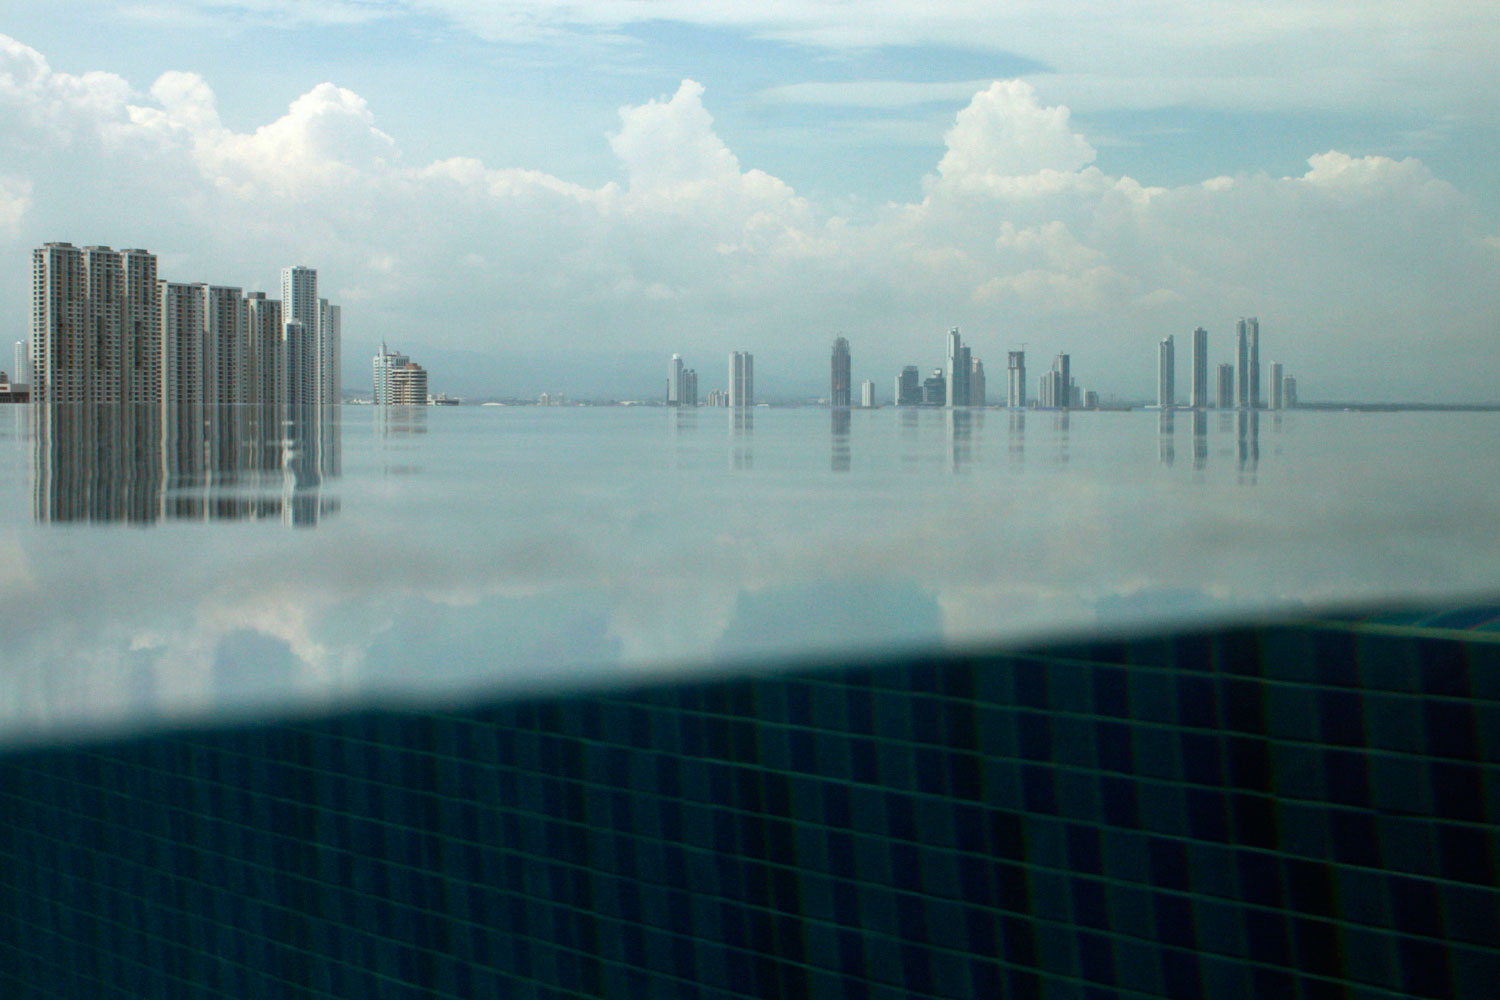 July 6, 2011. The Panama City skyline is reflected in a swimming pool at the Trump Ocean Club International Hotel and Tower.